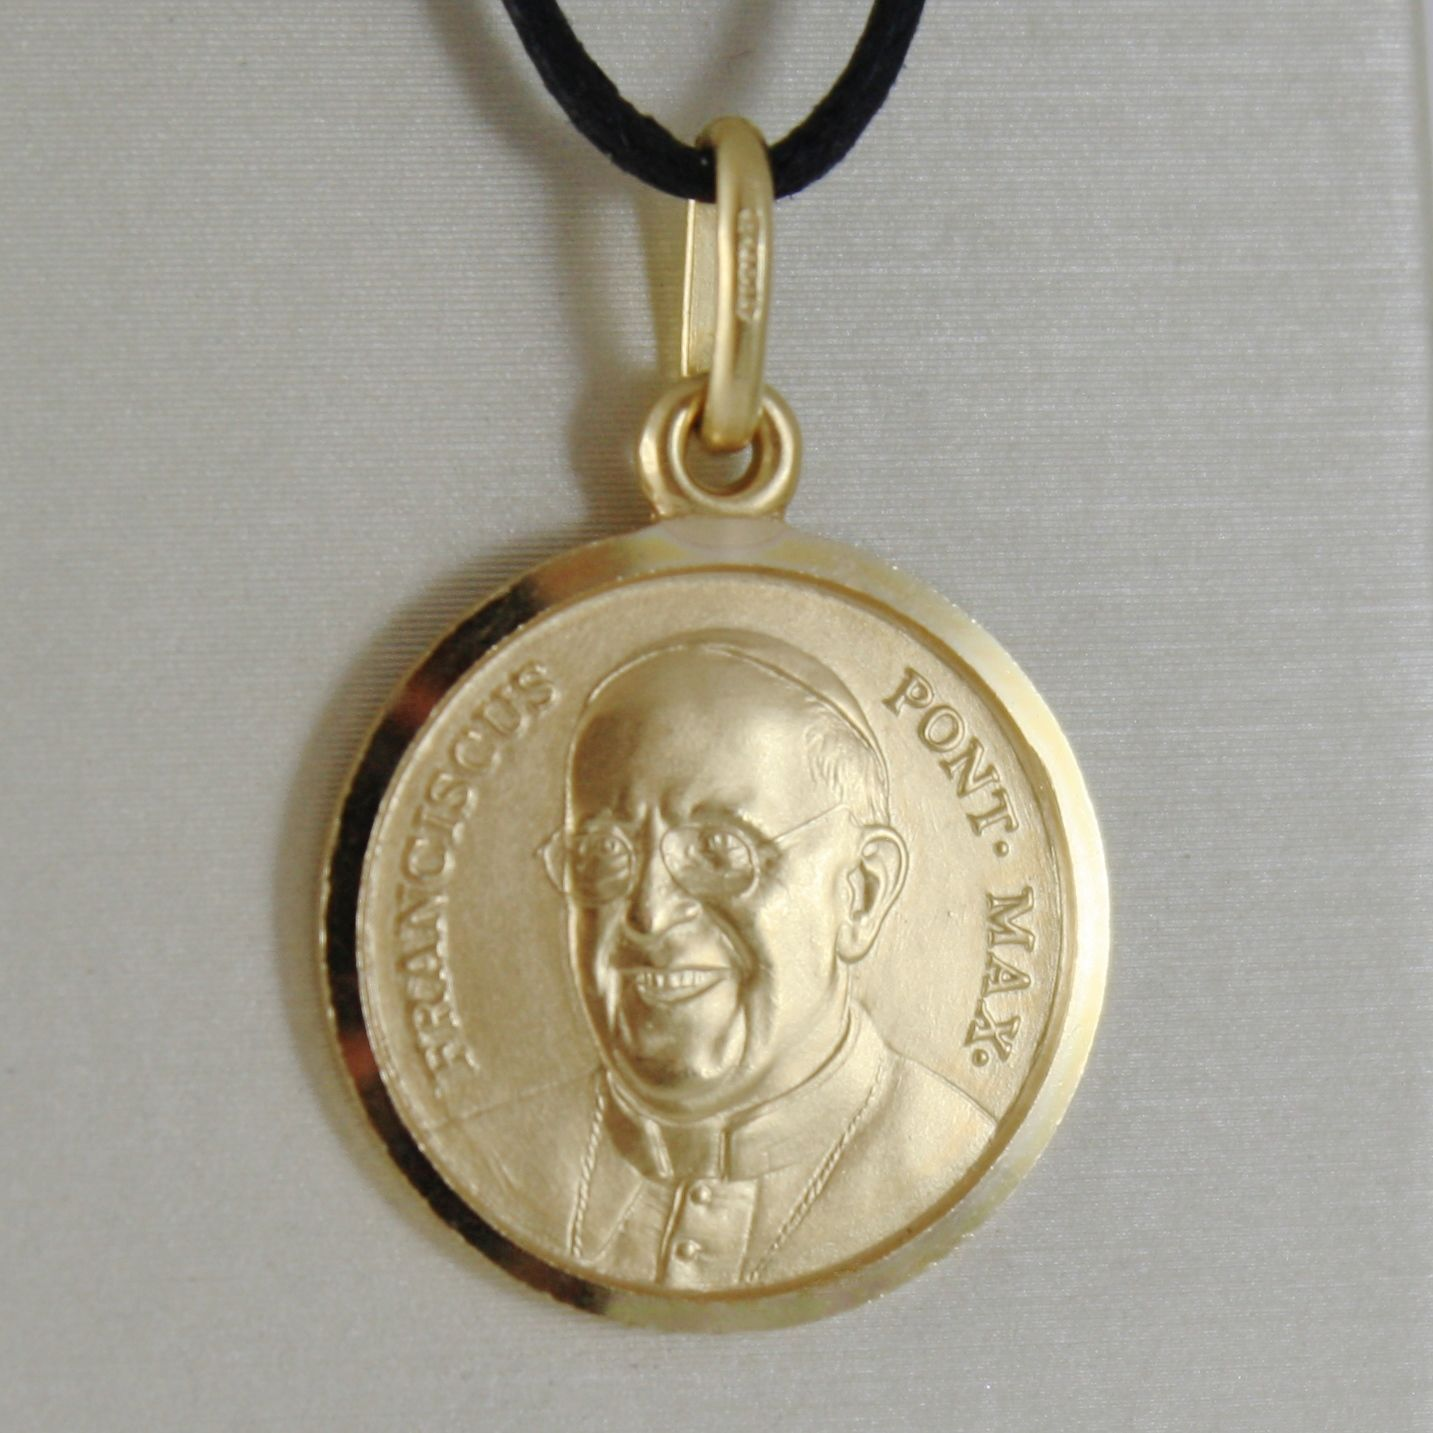 SOLID 18K YELLOW GOLD POPE FRANCIS FRANCESCO FRANCISCO 17 MM MEDAL MADE IN ITALY